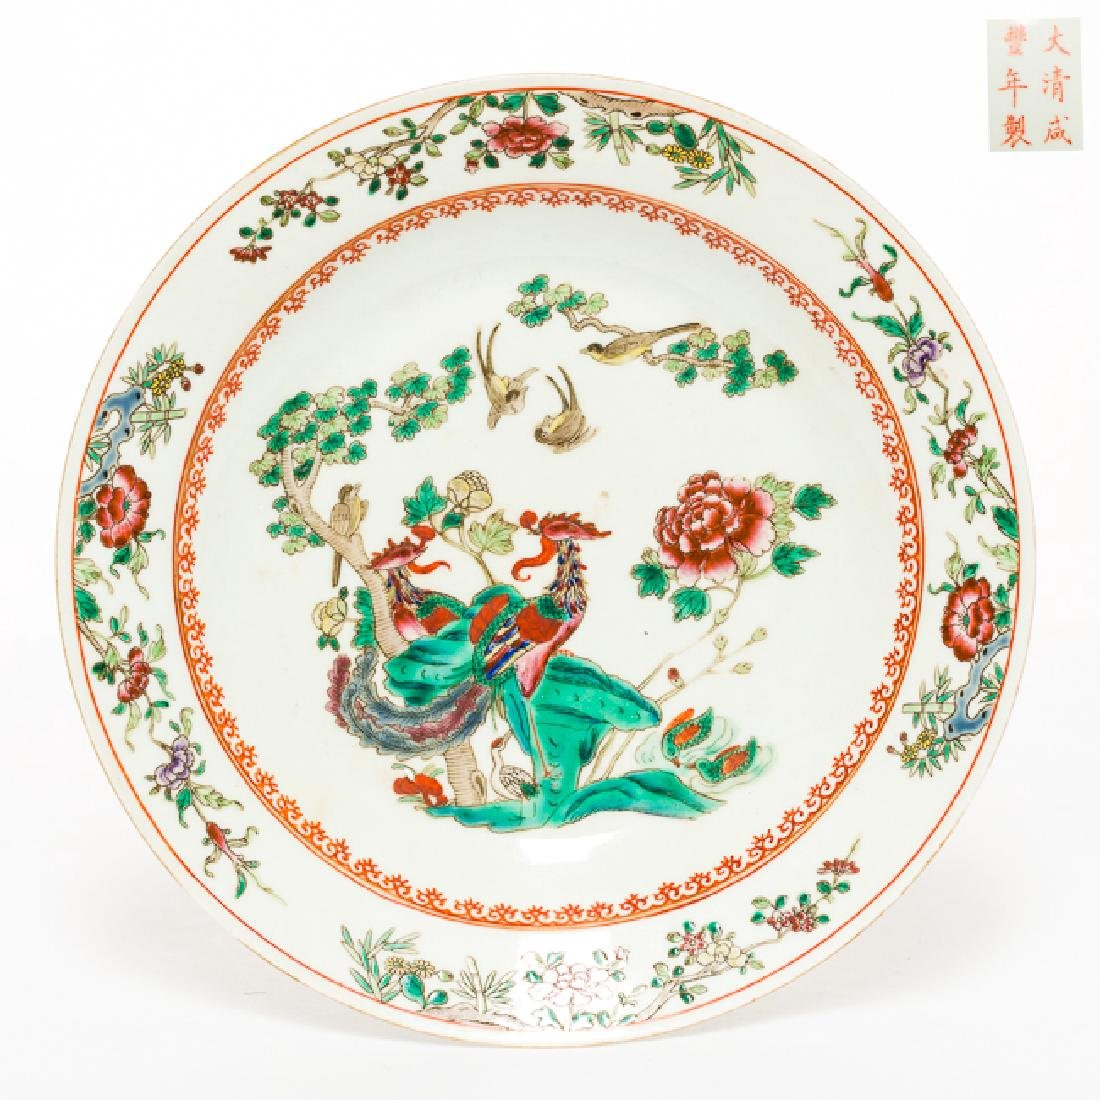 Chinese Antique Famille Rose Porcelain Dish, Qing